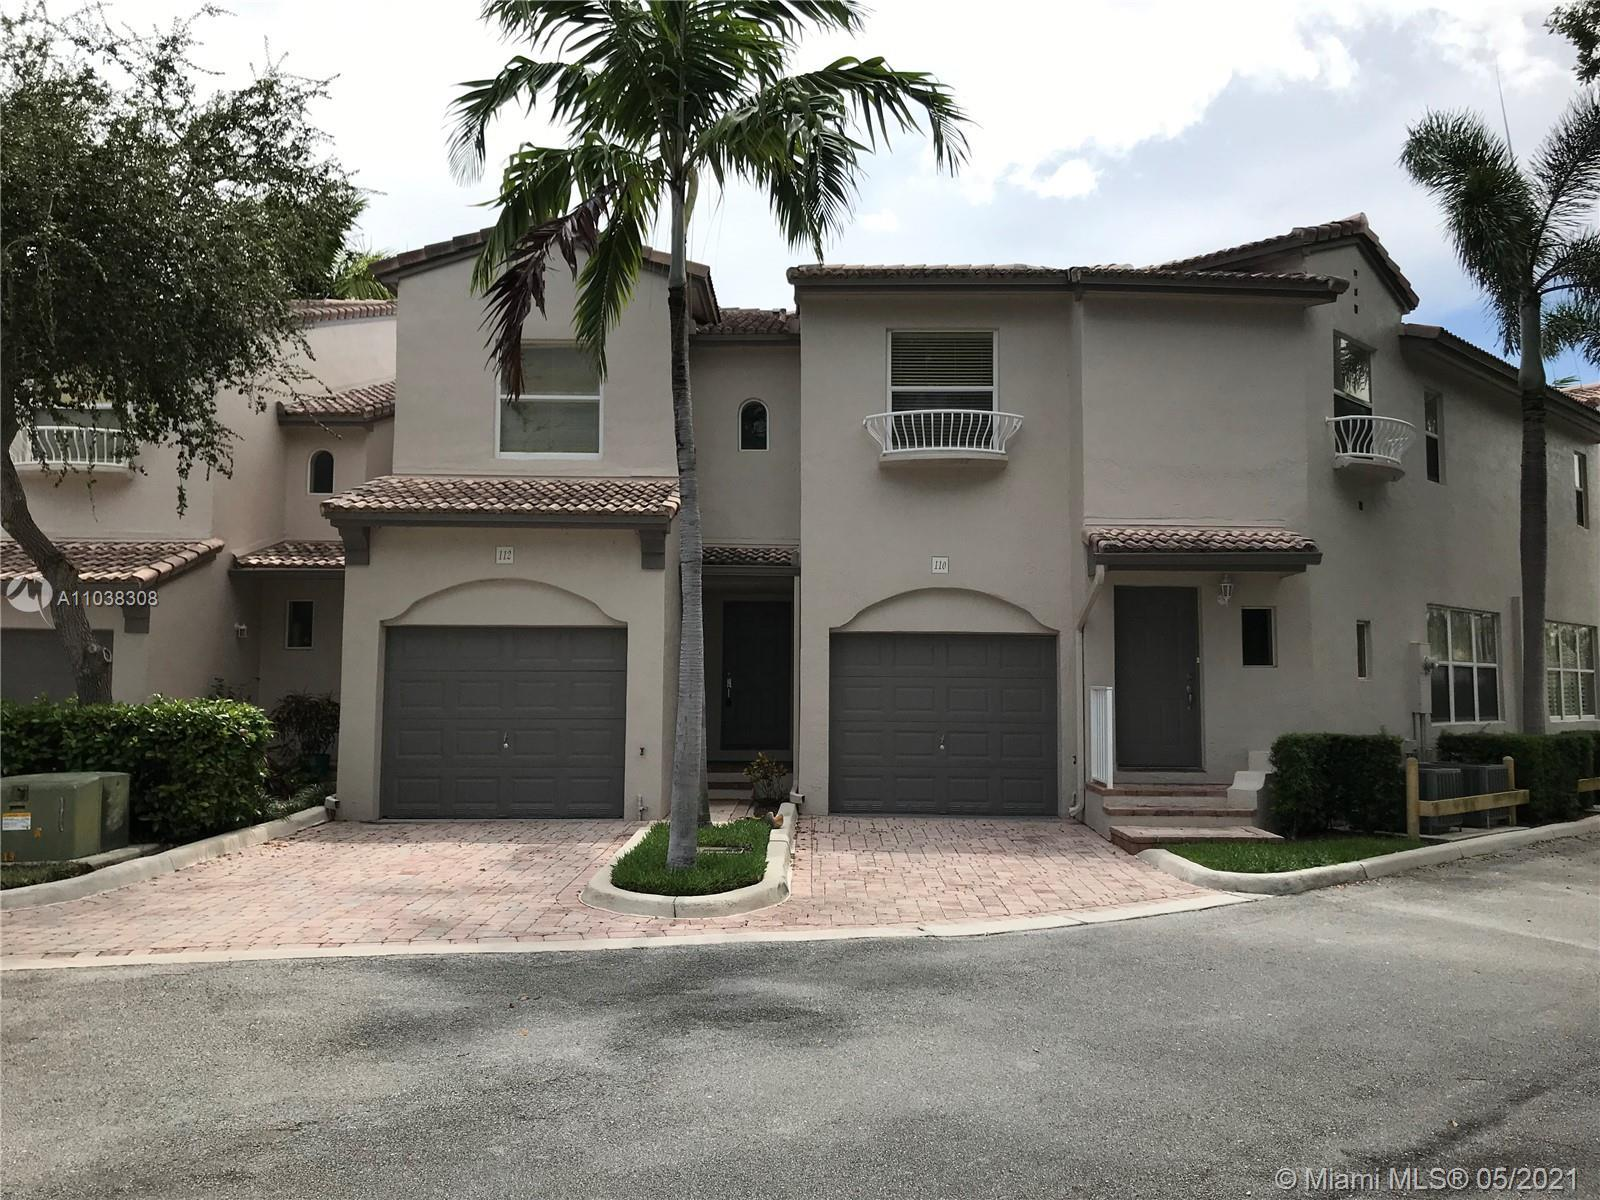 Gated Community , 2-story Townhome just across from the beach in wonderful Lauderdale By The Sea, 2